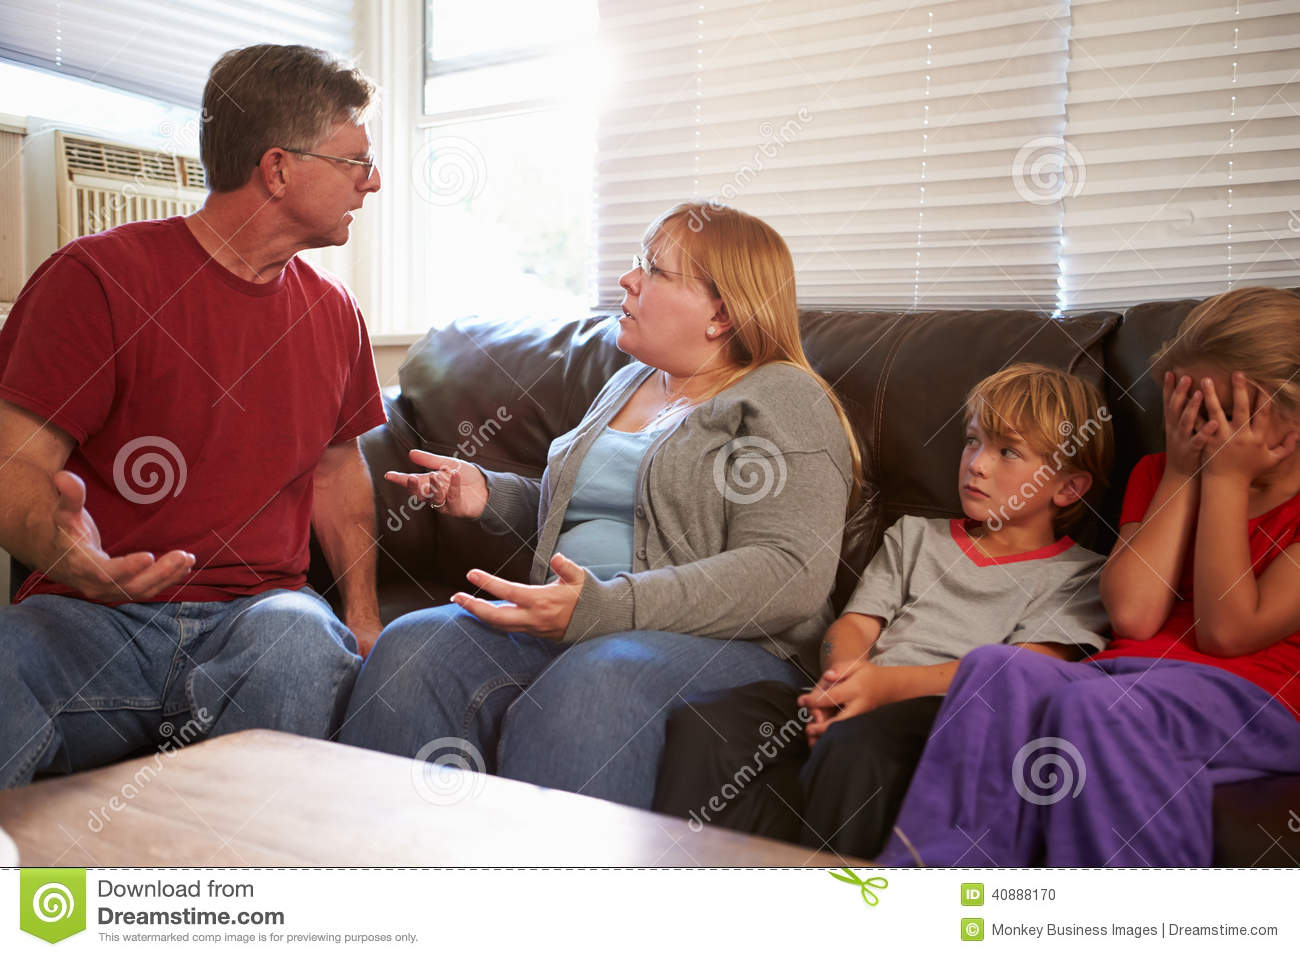 Familiezitting op Sofa With Parents Arguing